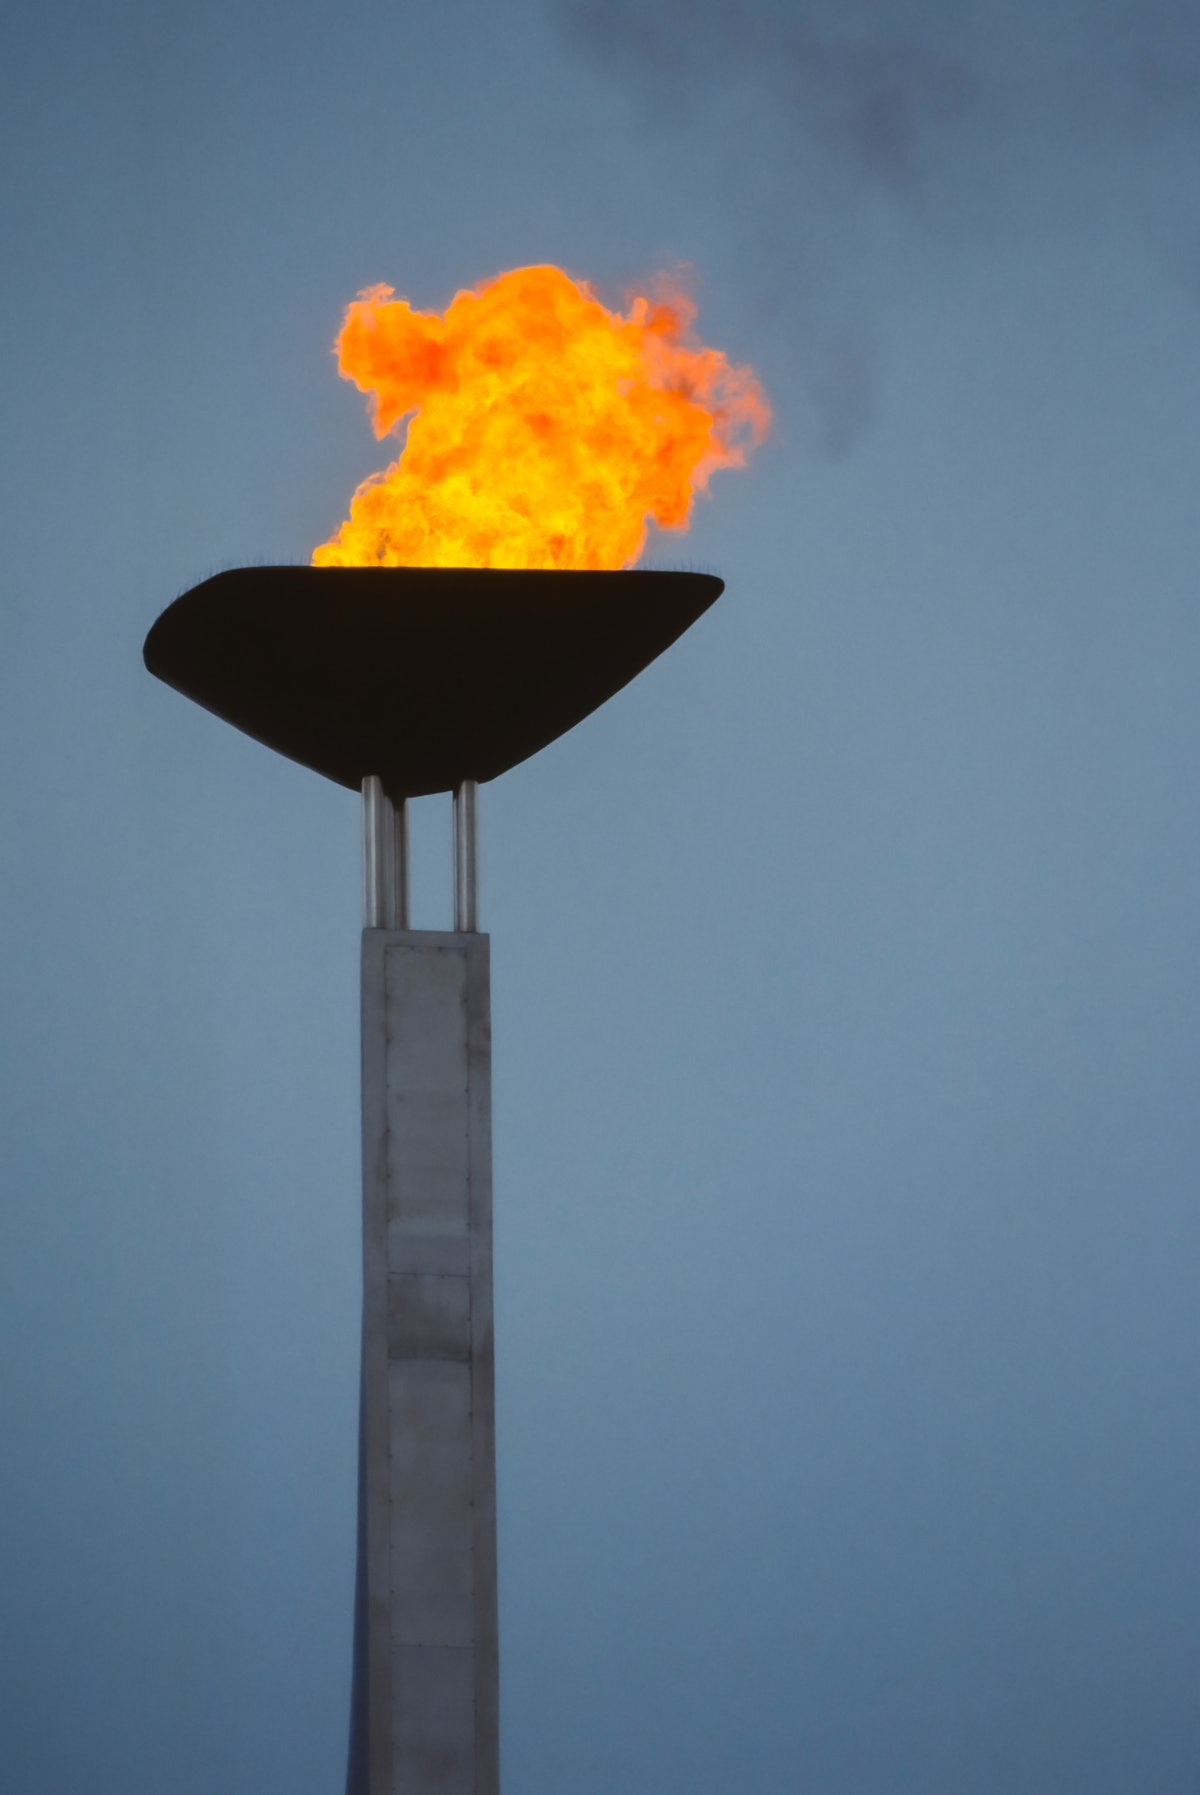 The Olympic's Opening Ceremony features the burning of the flames in the Olympic cauldron, pictured here above the Montjuic Olympic Stadium during the 1992 Summer Olympics.